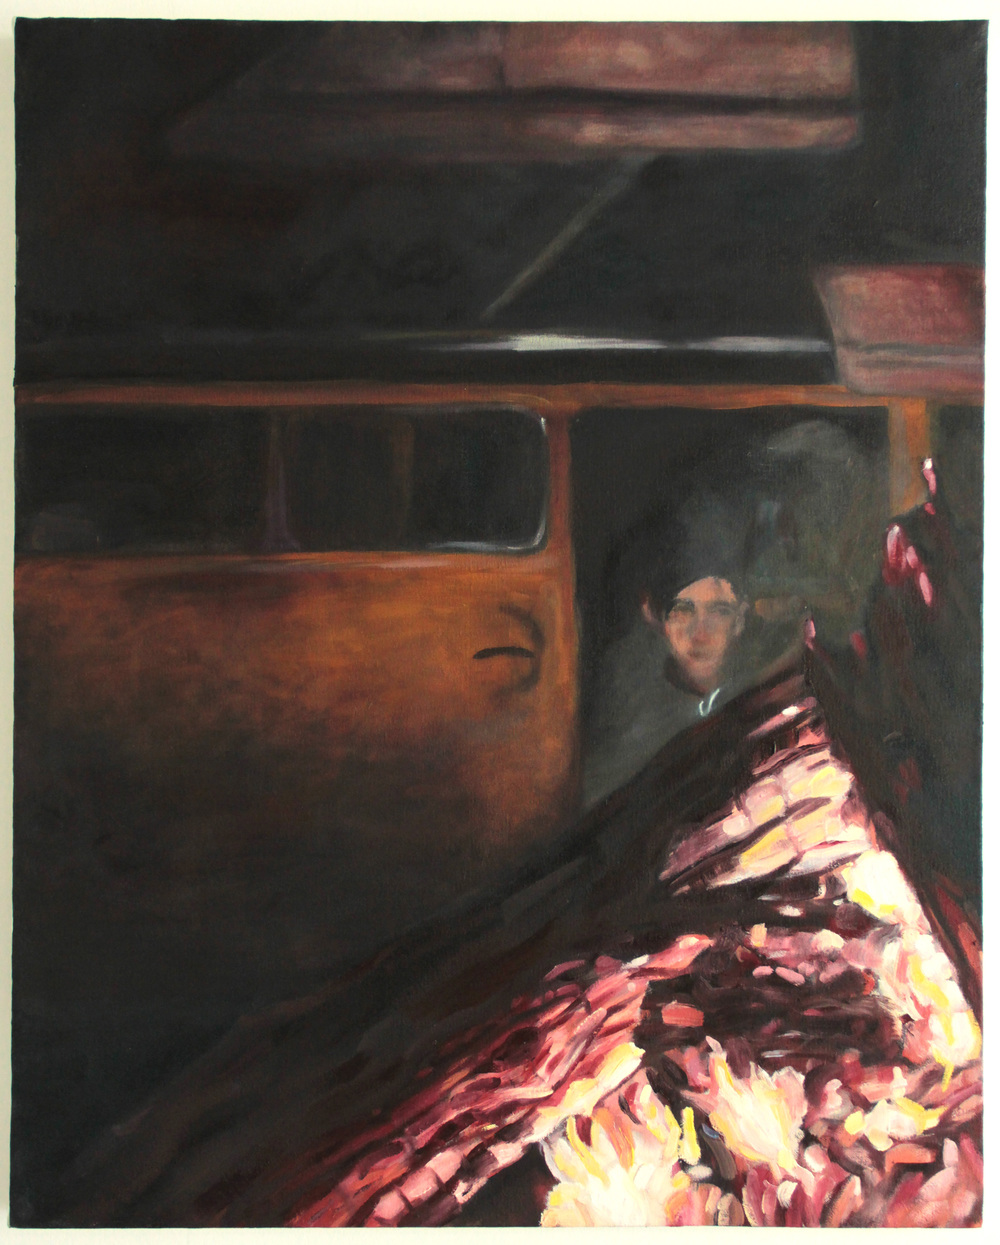 Between These Heart Strings Lived Saul Bellow, 2011, Oil on Canvas, 40 inches (101.6cm) x 30 inches (76.2cm)